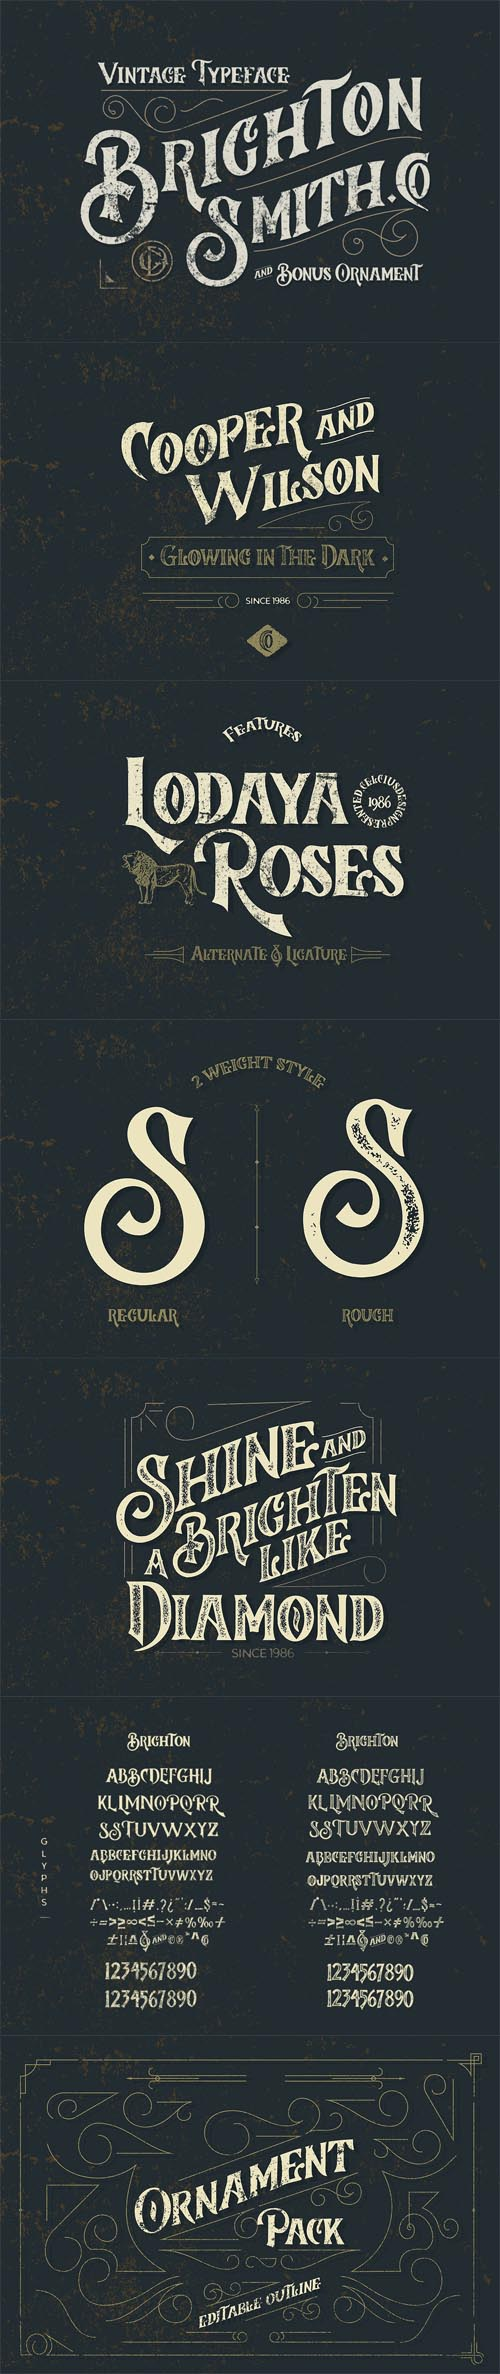 Brighton Smith Typeface